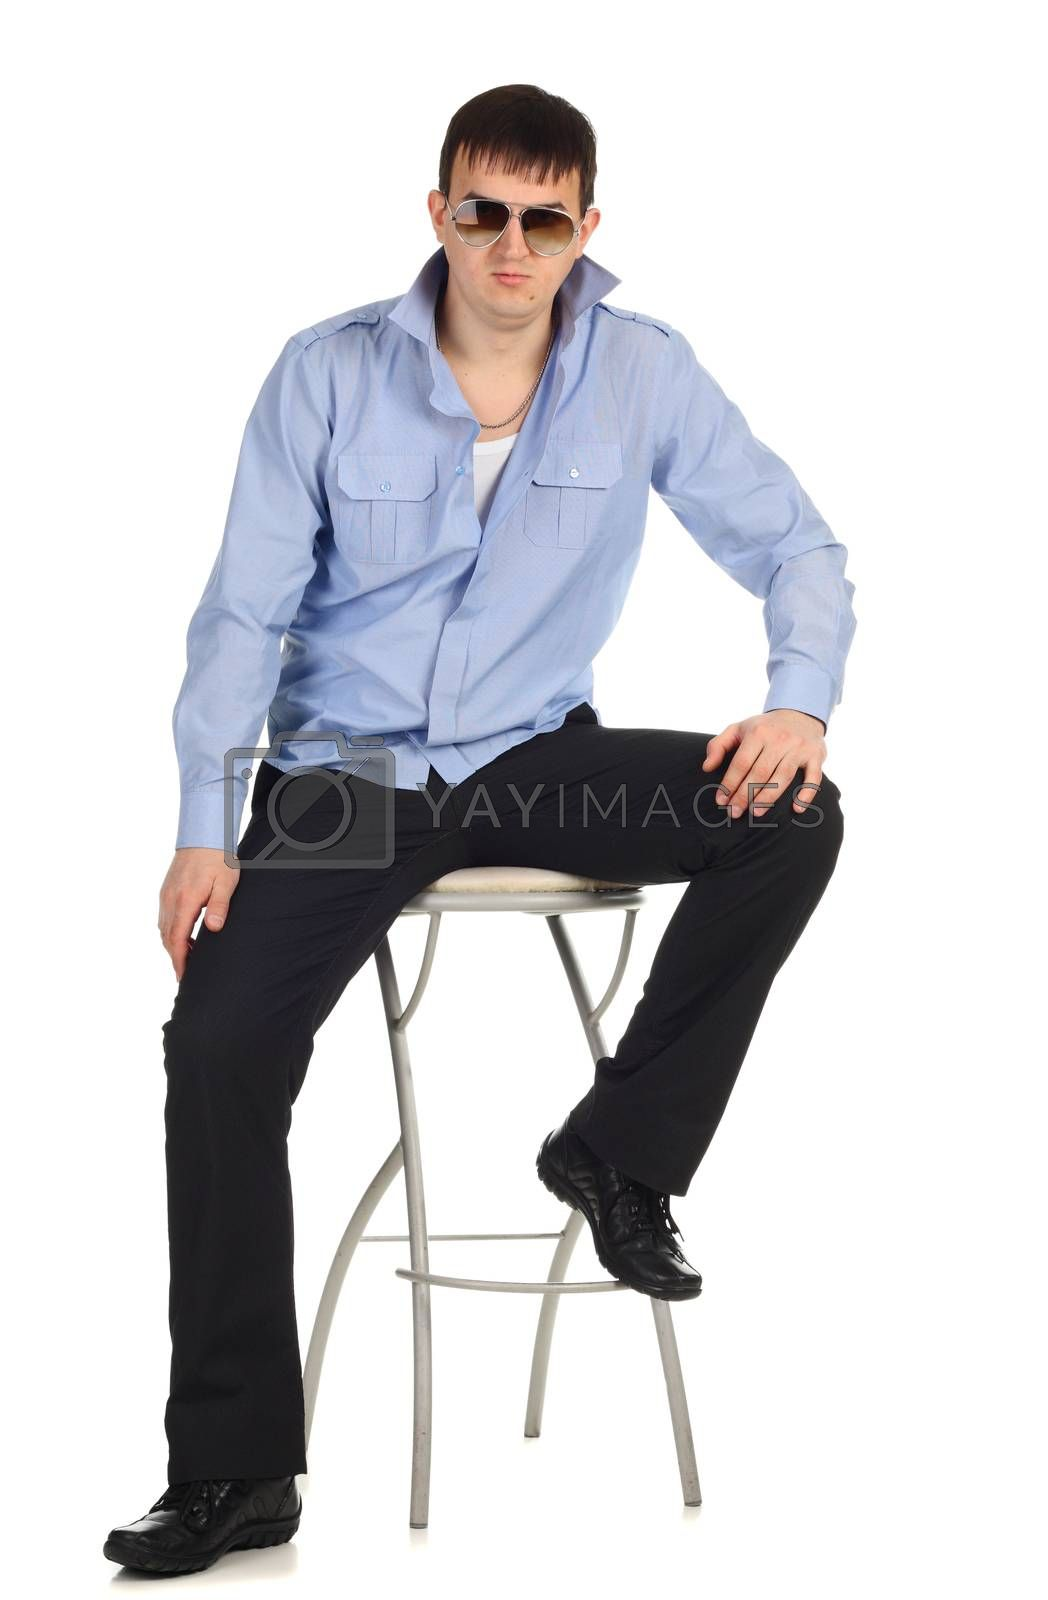 Funny guy sitting on the chair isolated on the white